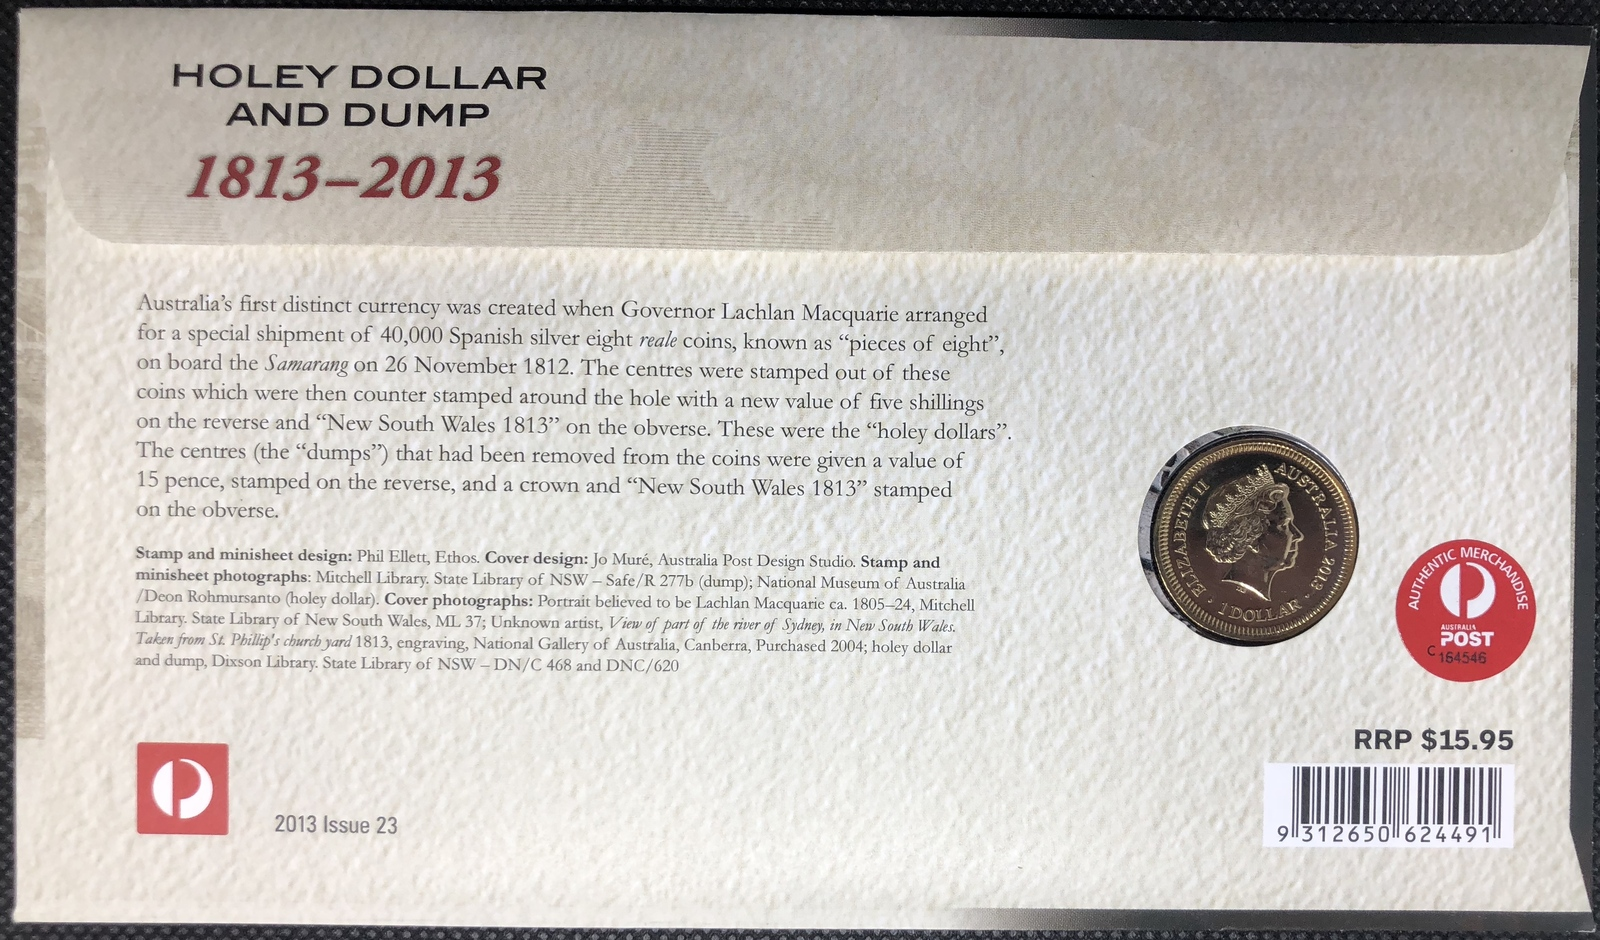 2013 PNC Holey Dollar and Dump (C mintmark)